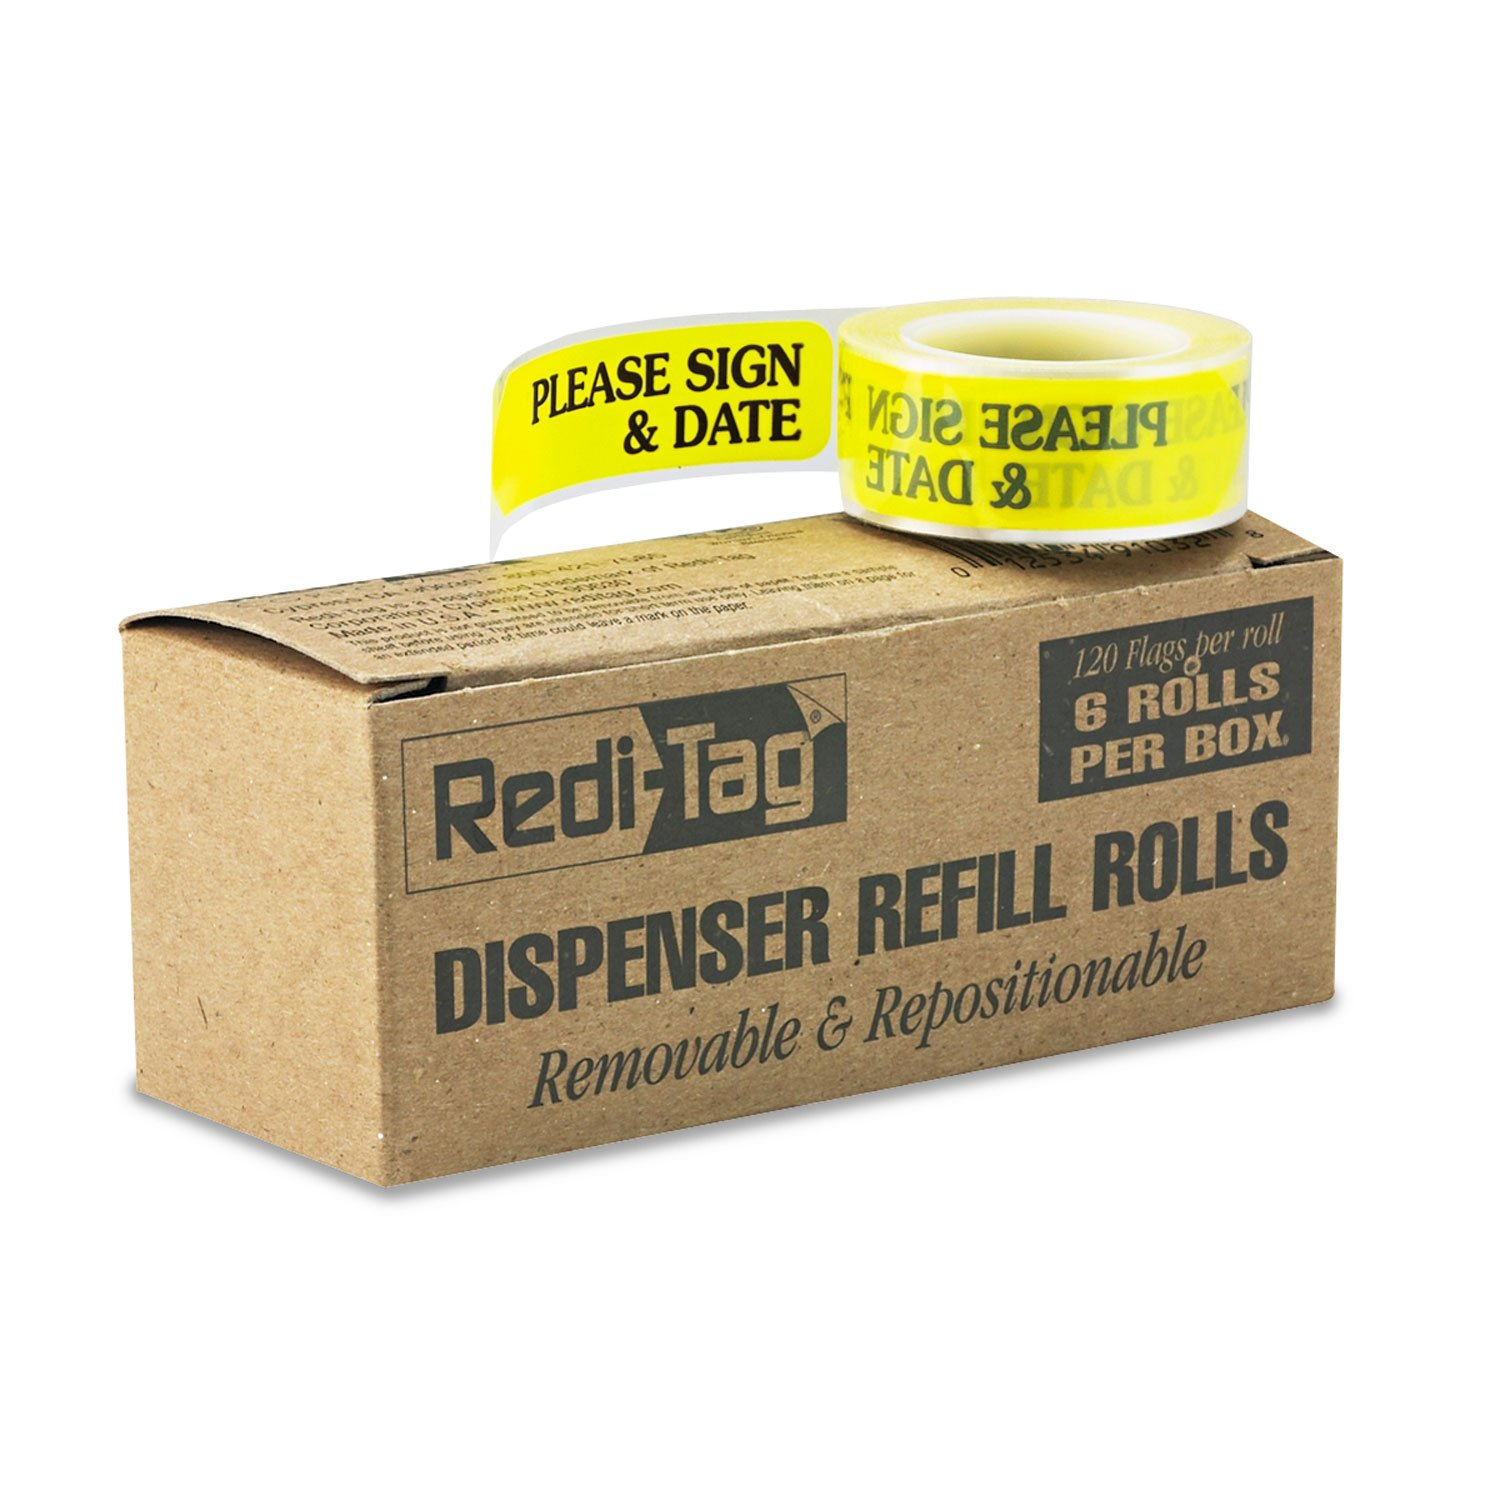 Redi-Tag® Message Arrow Flag Refills, ''Please Sign & Date'', Yellow, Six Rolls of 120 Flags by Redi-Tag